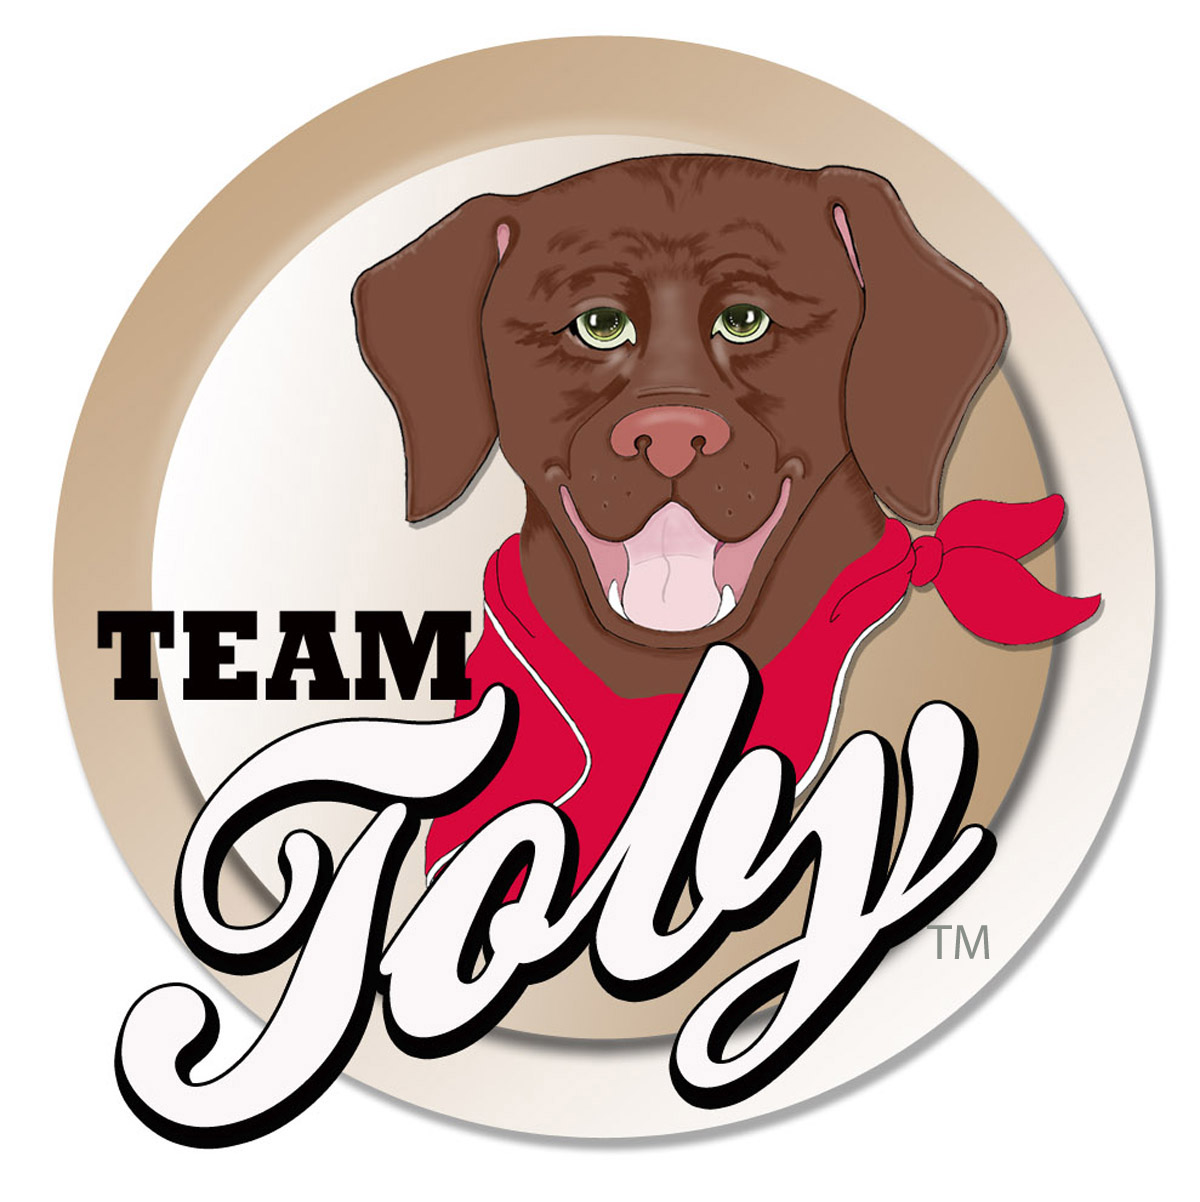 team-toby-logo-w-tm